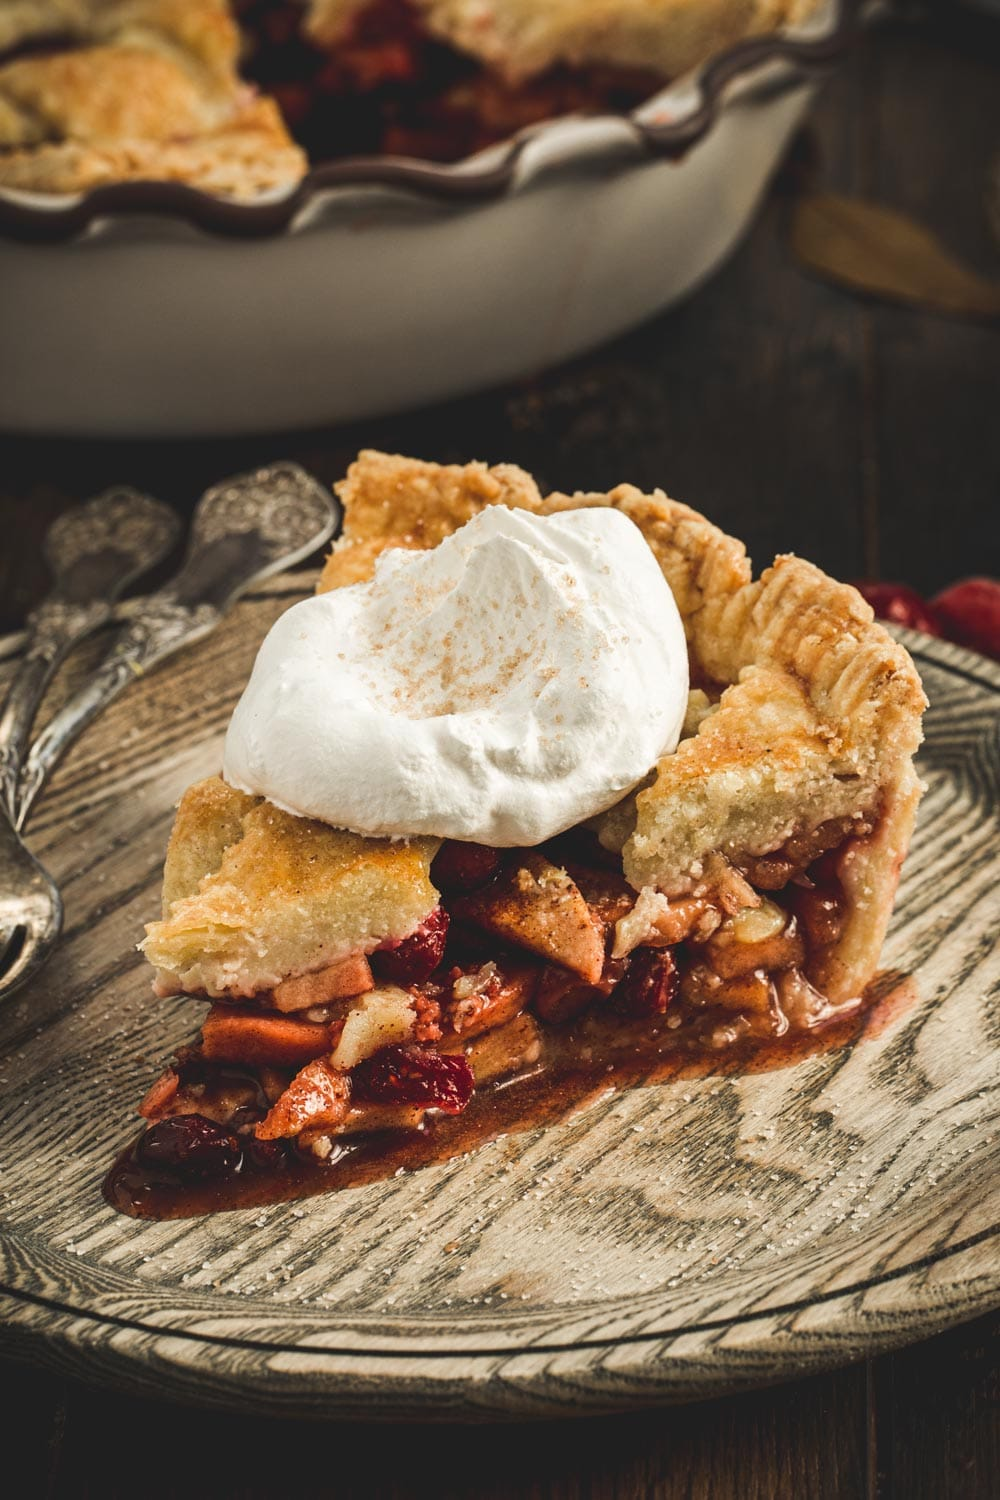 Slice of apple cranberry pie topped with whipped cream.